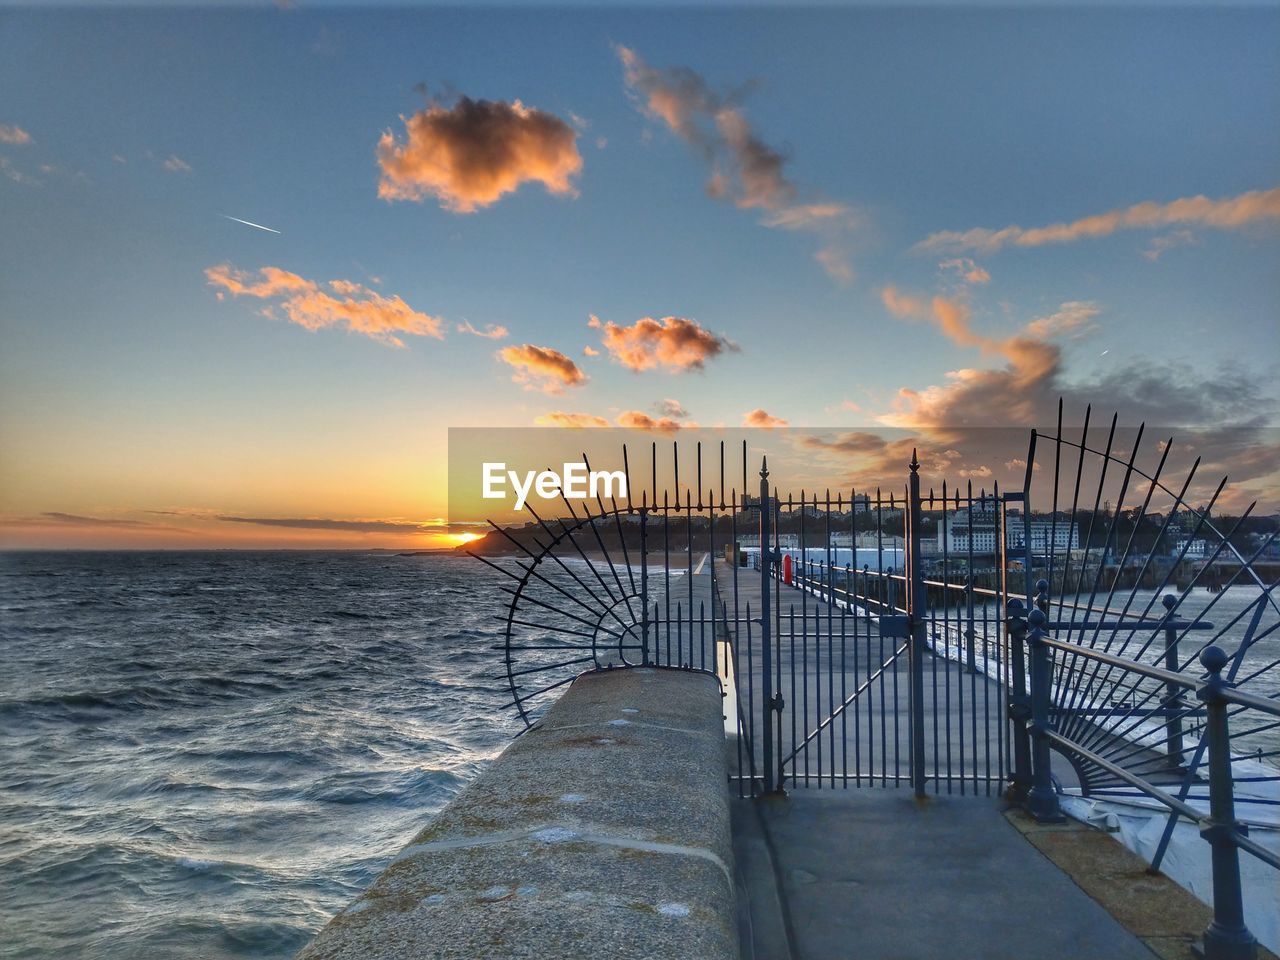 sky, sunset, cloud - sky, water, sea, scenics - nature, beauty in nature, nature, architecture, built structure, tranquil scene, orange color, no people, tranquility, horizon over water, horizon, idyllic, railing, beach, outdoors